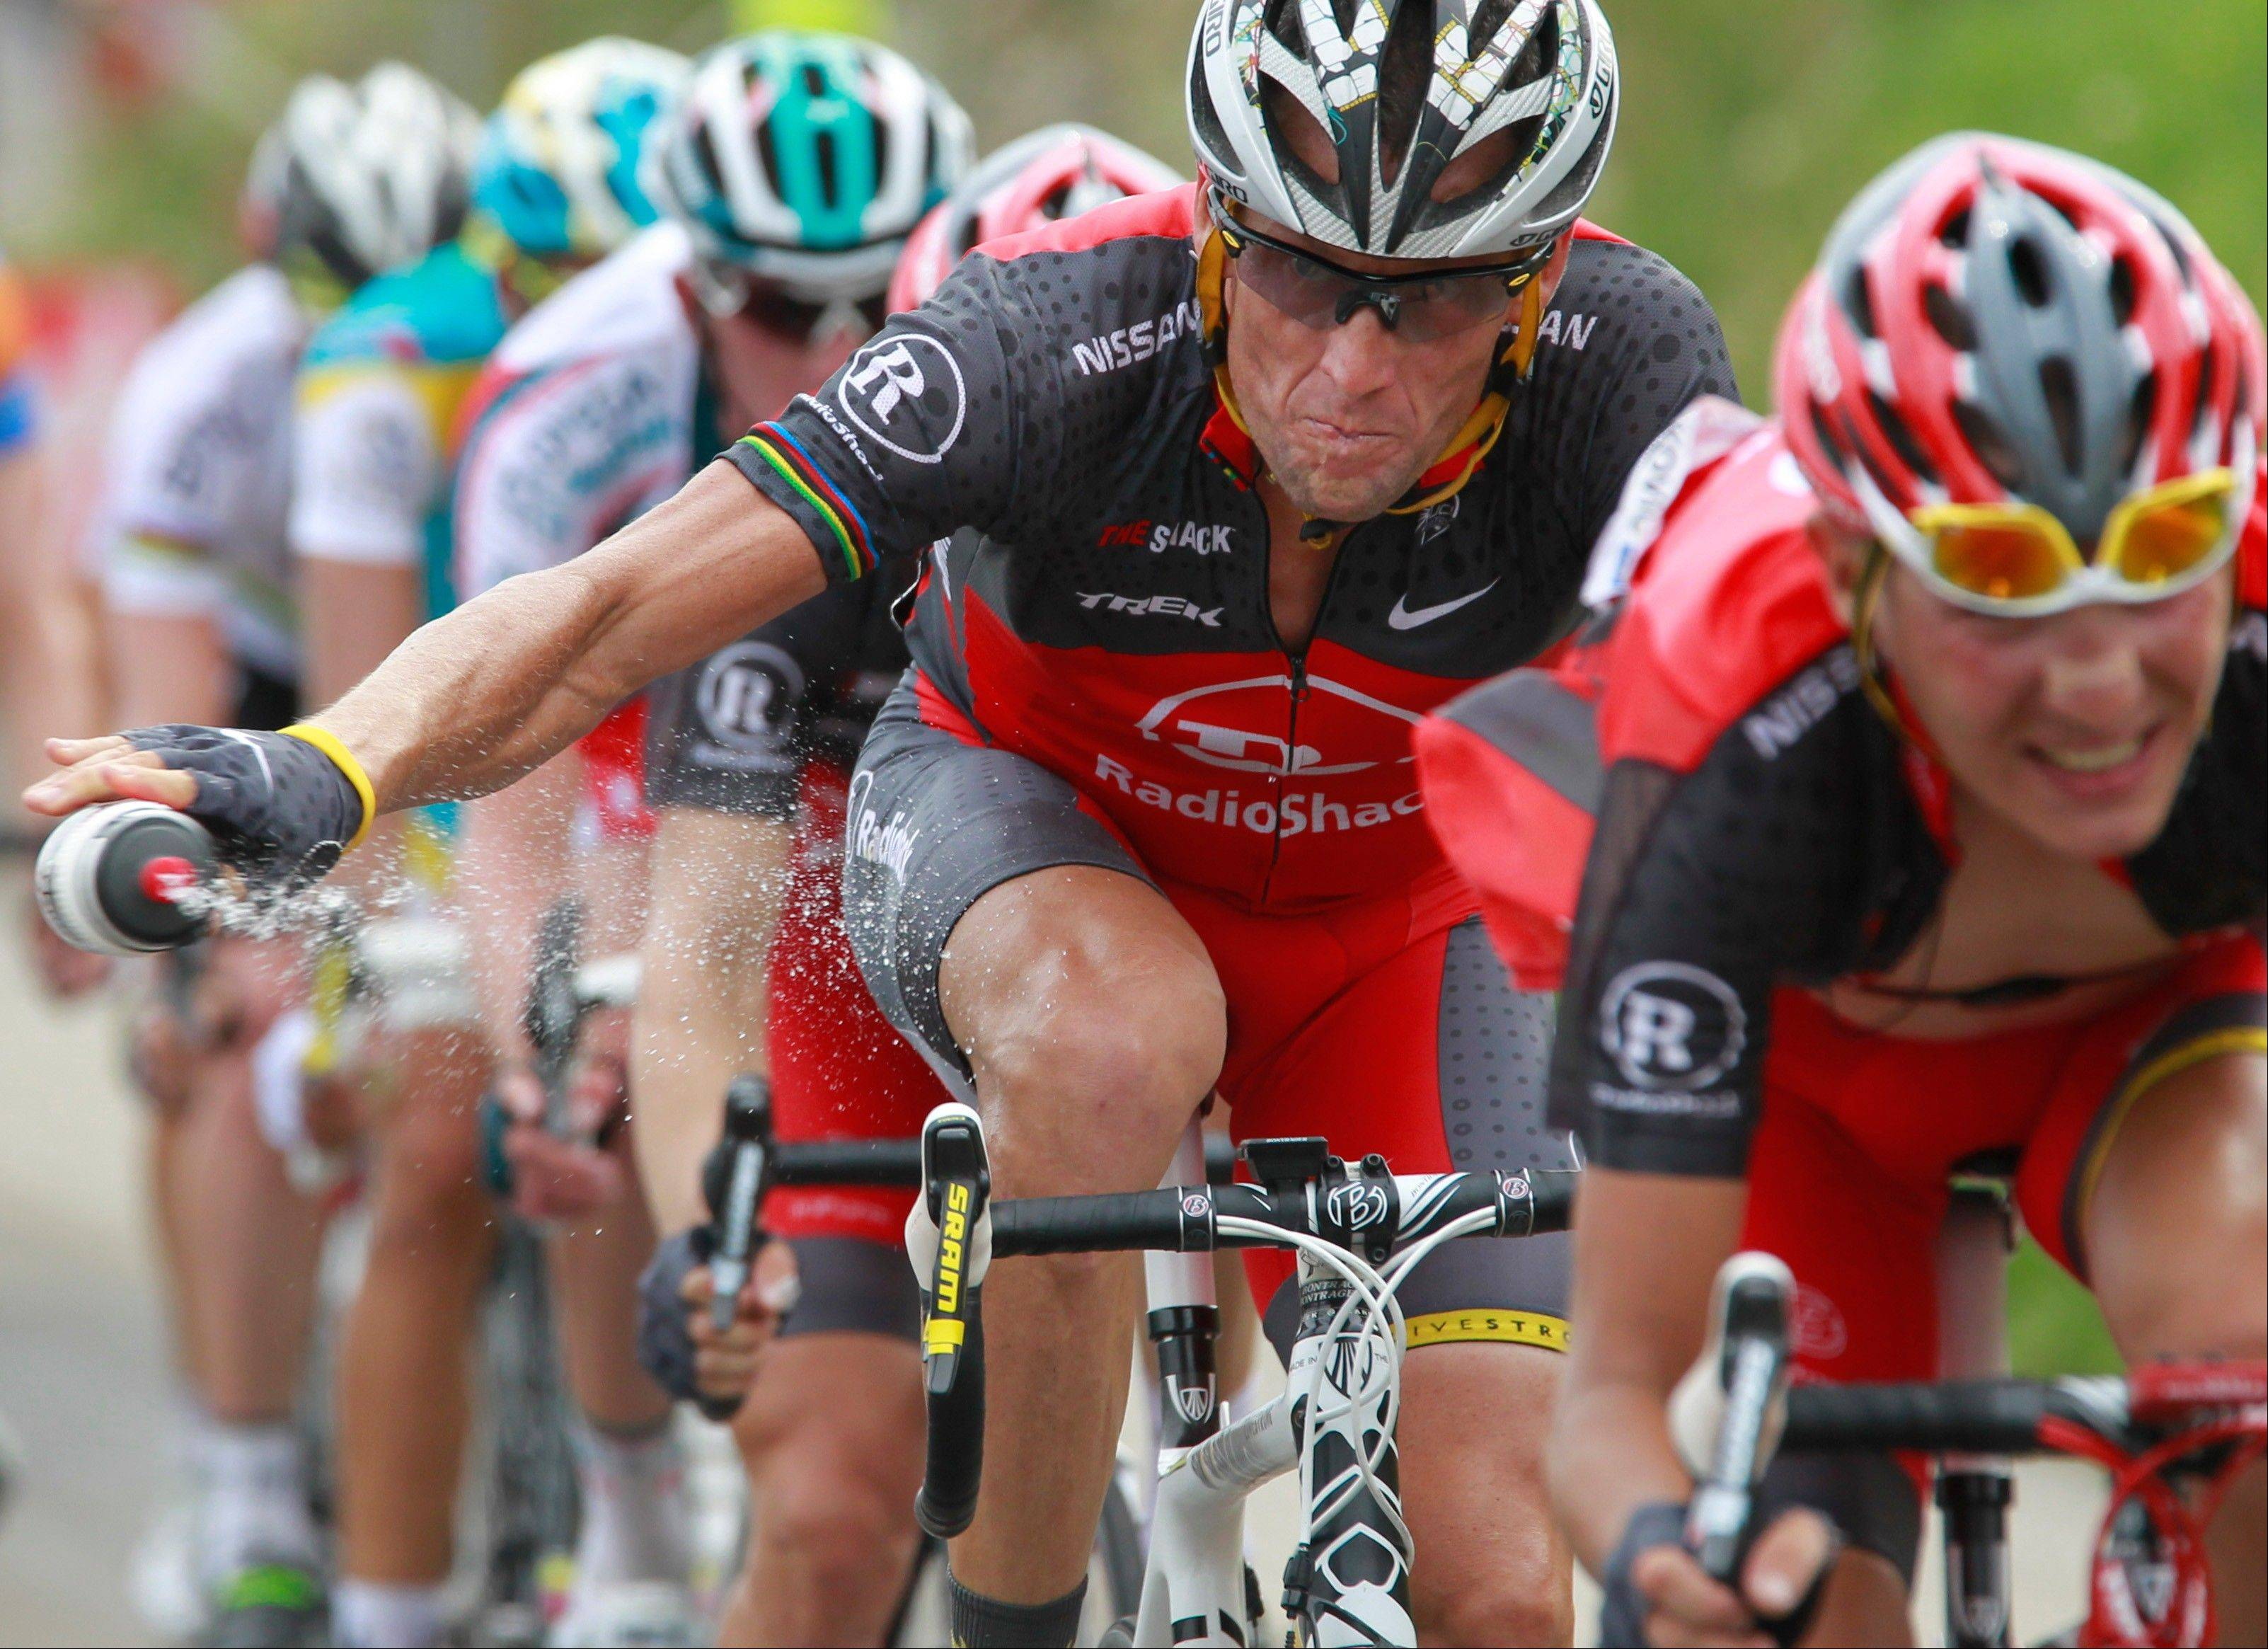 FILE - In this July 10, 2010, file photo, Lance Armstrong throws out his water bottle in the last kilometers of the climb toward Station les Rousses, France, during the seventh stage of the Tour de France cycling race. The New York Times reported Friday, Jan. 4, 2013, that Armstrong, who has strongly denied the doping charges that led to him being stripped of his seven Tour de France titles, has told associates he is considering admitting to the use of performance-enhancing drugs. Armstrong attorney Tim Herman denied that Armstrong has reached out to USADA chief executive Travis Tygart and David Howman, director general of the World Anti-Doping Agency.